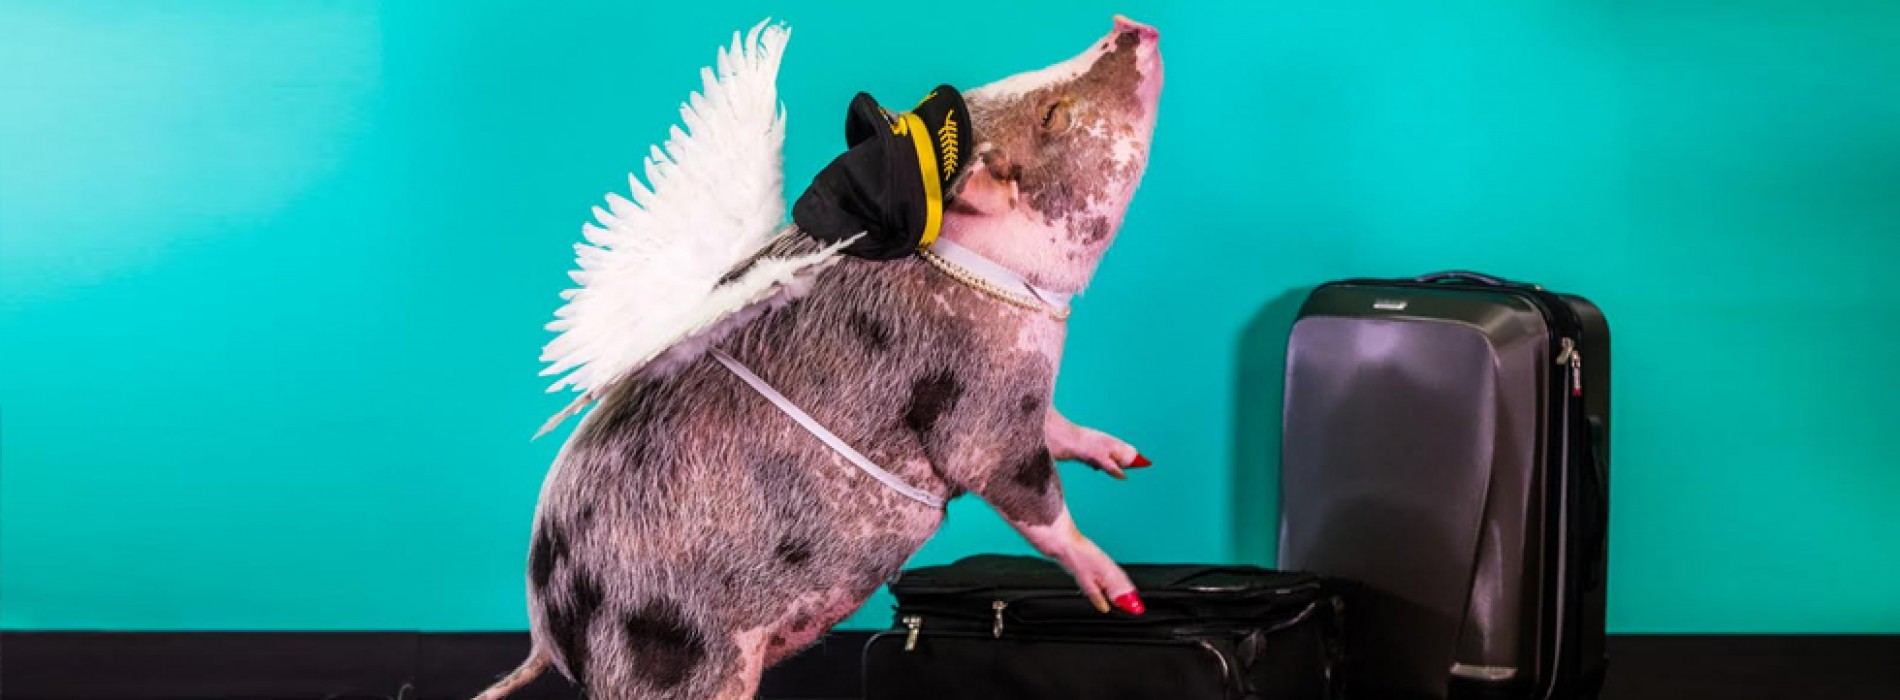 Pigs Fly at SFO: Airport welcomes LiLou to the Wag Brigade